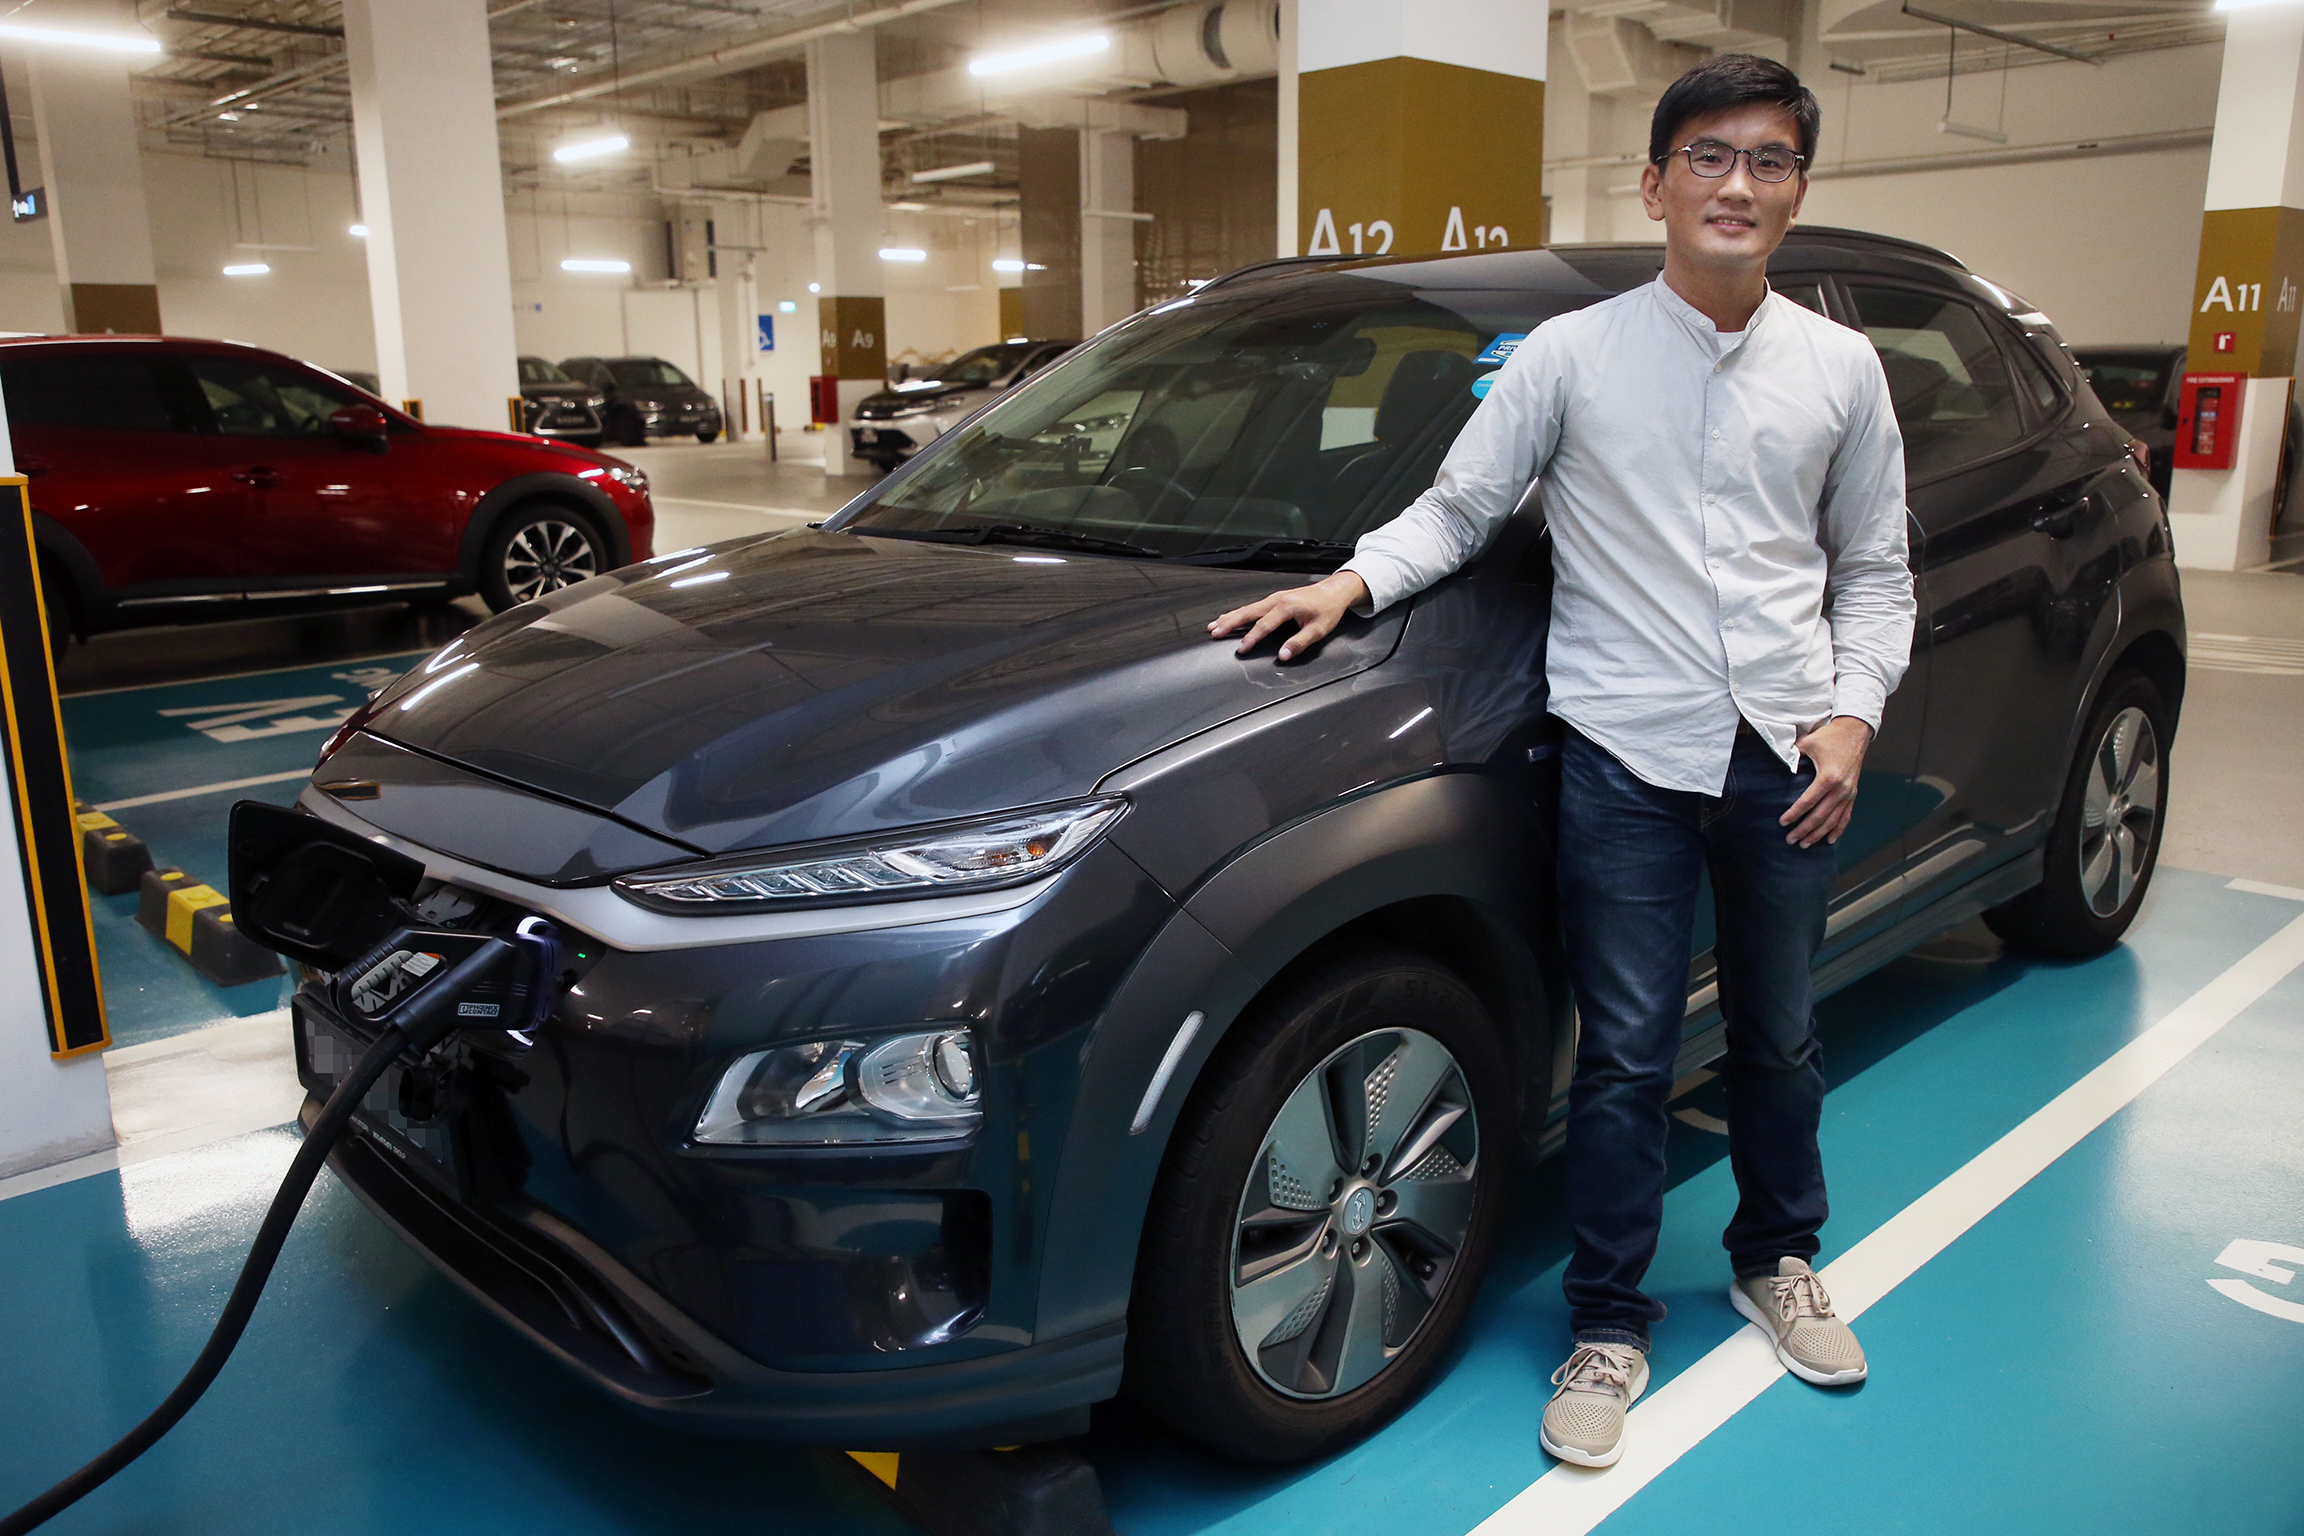 Mr Koh Jie Meng, who has been driving an electric vehicle (EV) since 2019, said he now has no doubts about the feasibility of owning one, even as a HDB dweller. — Photo by Ooi Boon Keong for TODAY